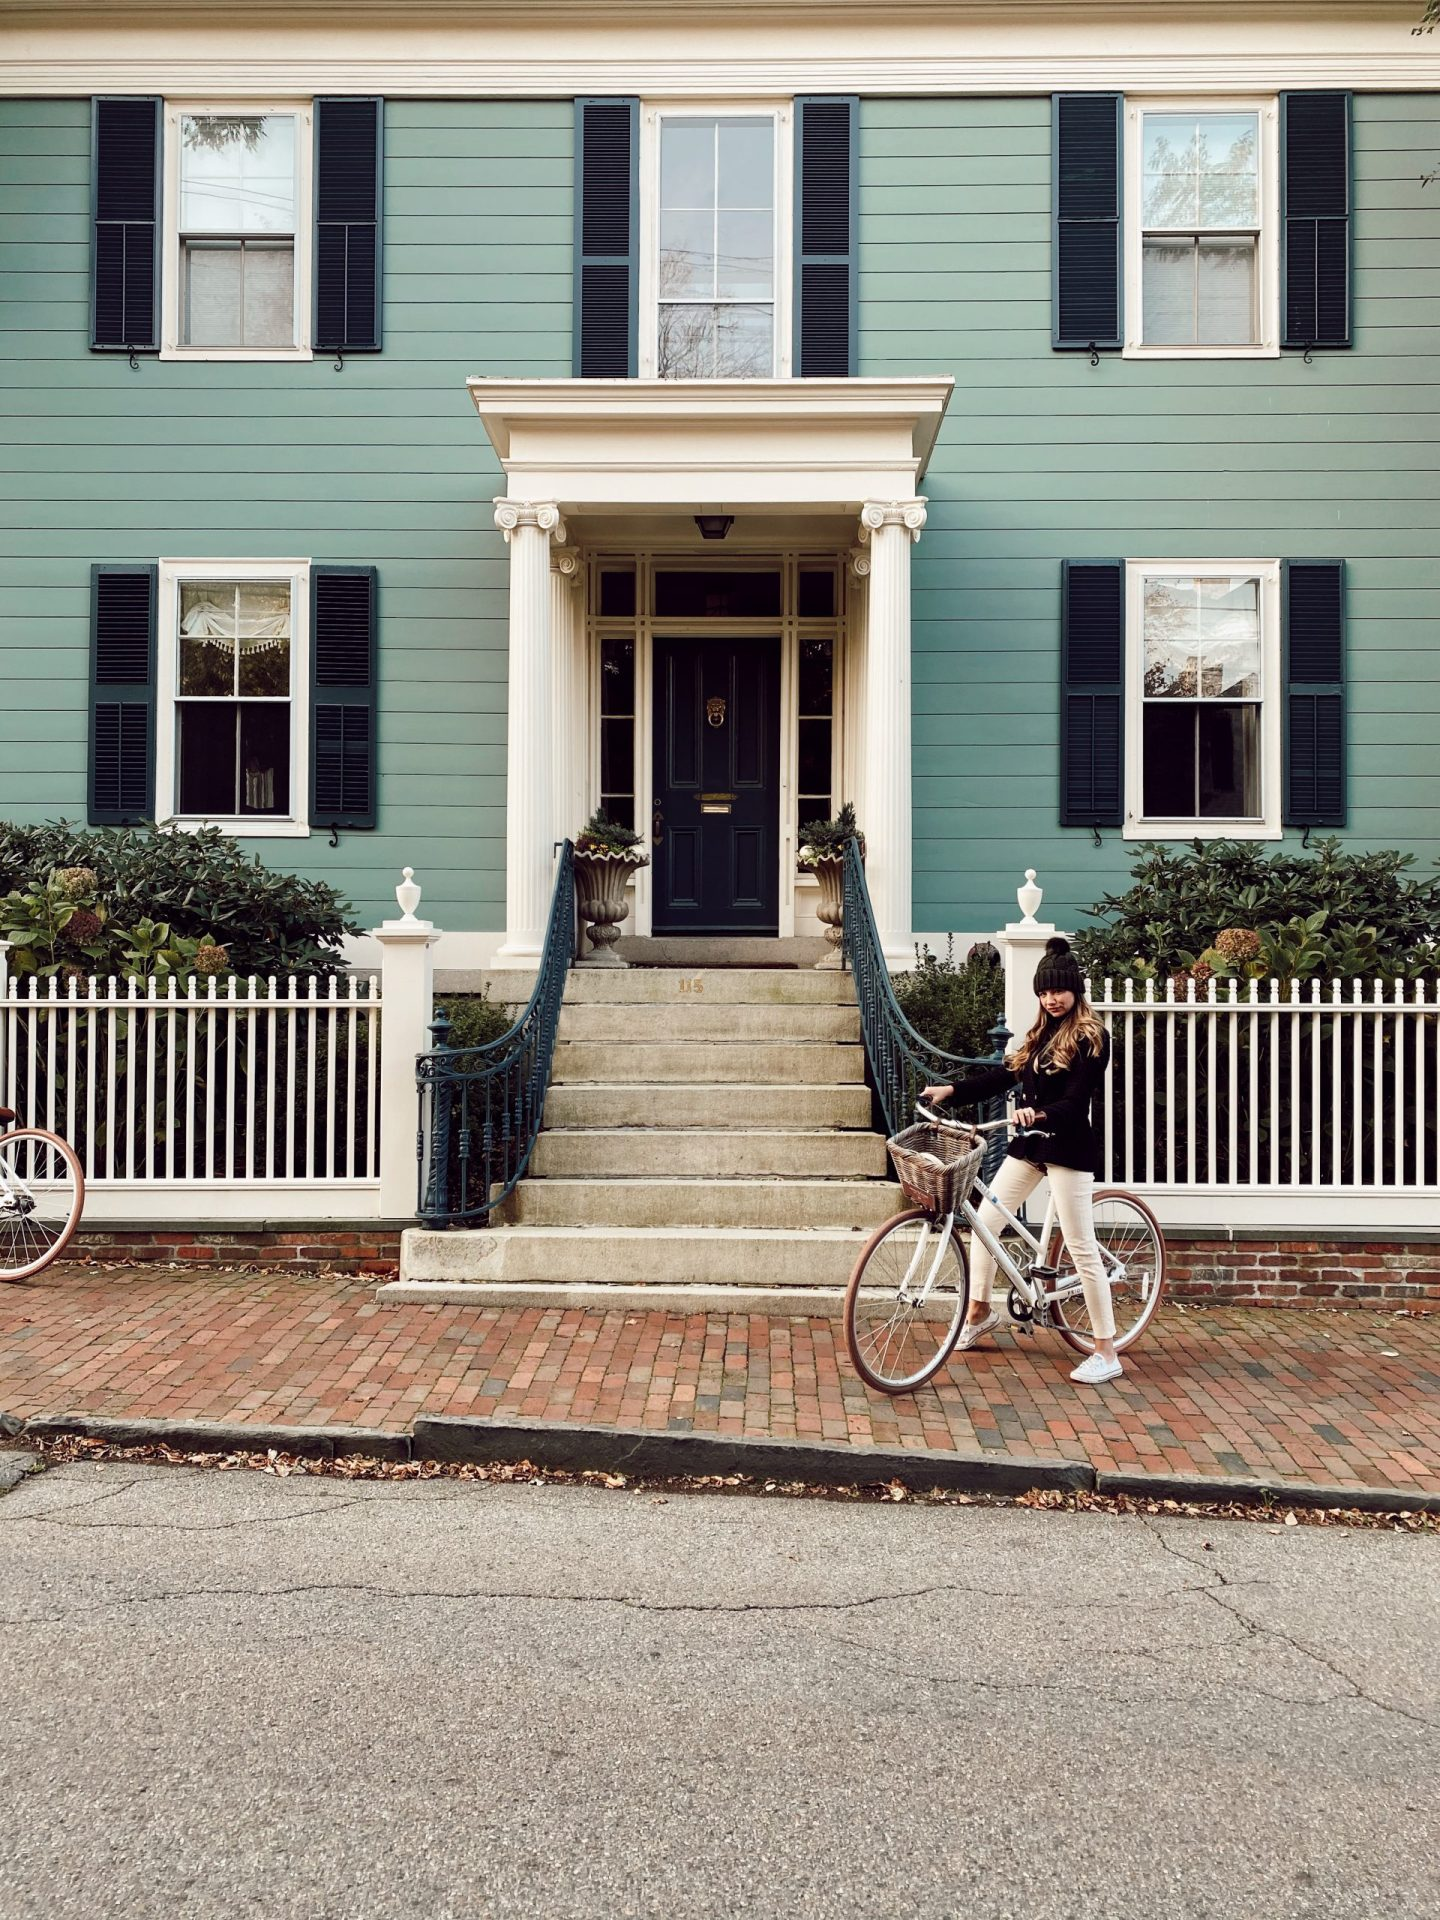 8 Things to do in Newport Rhode Island in the Off Season